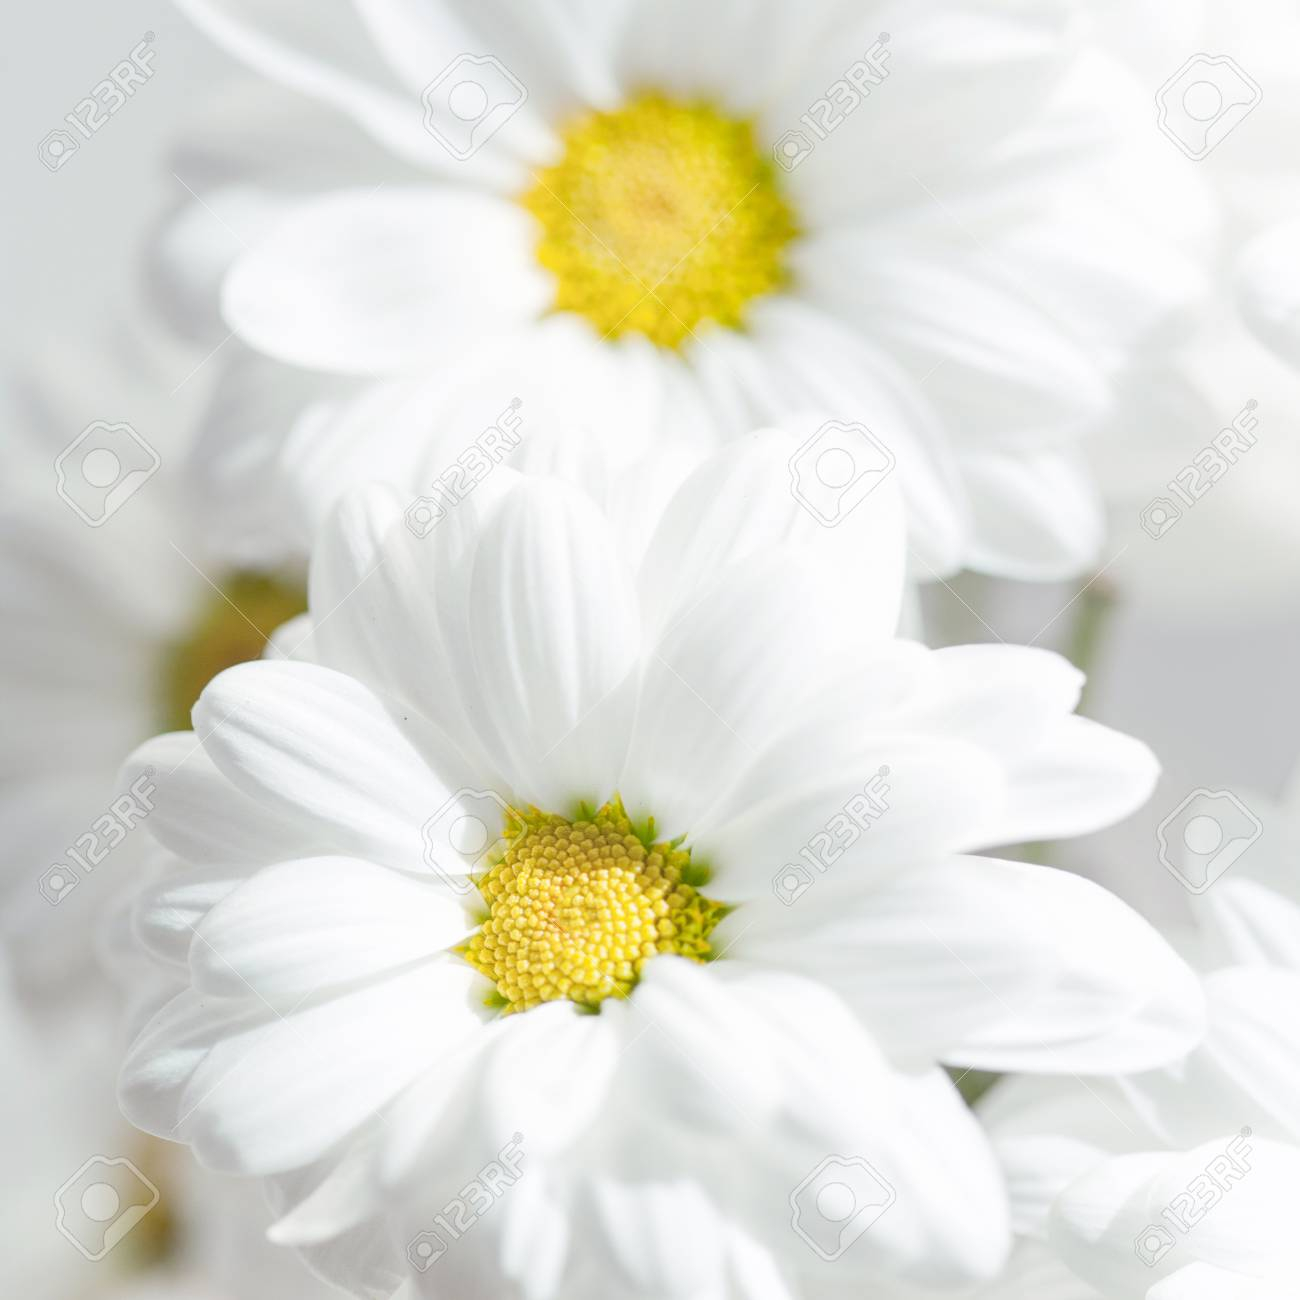 spring flowers wallpaper white gerbera flower or daisy flower on grey background close up